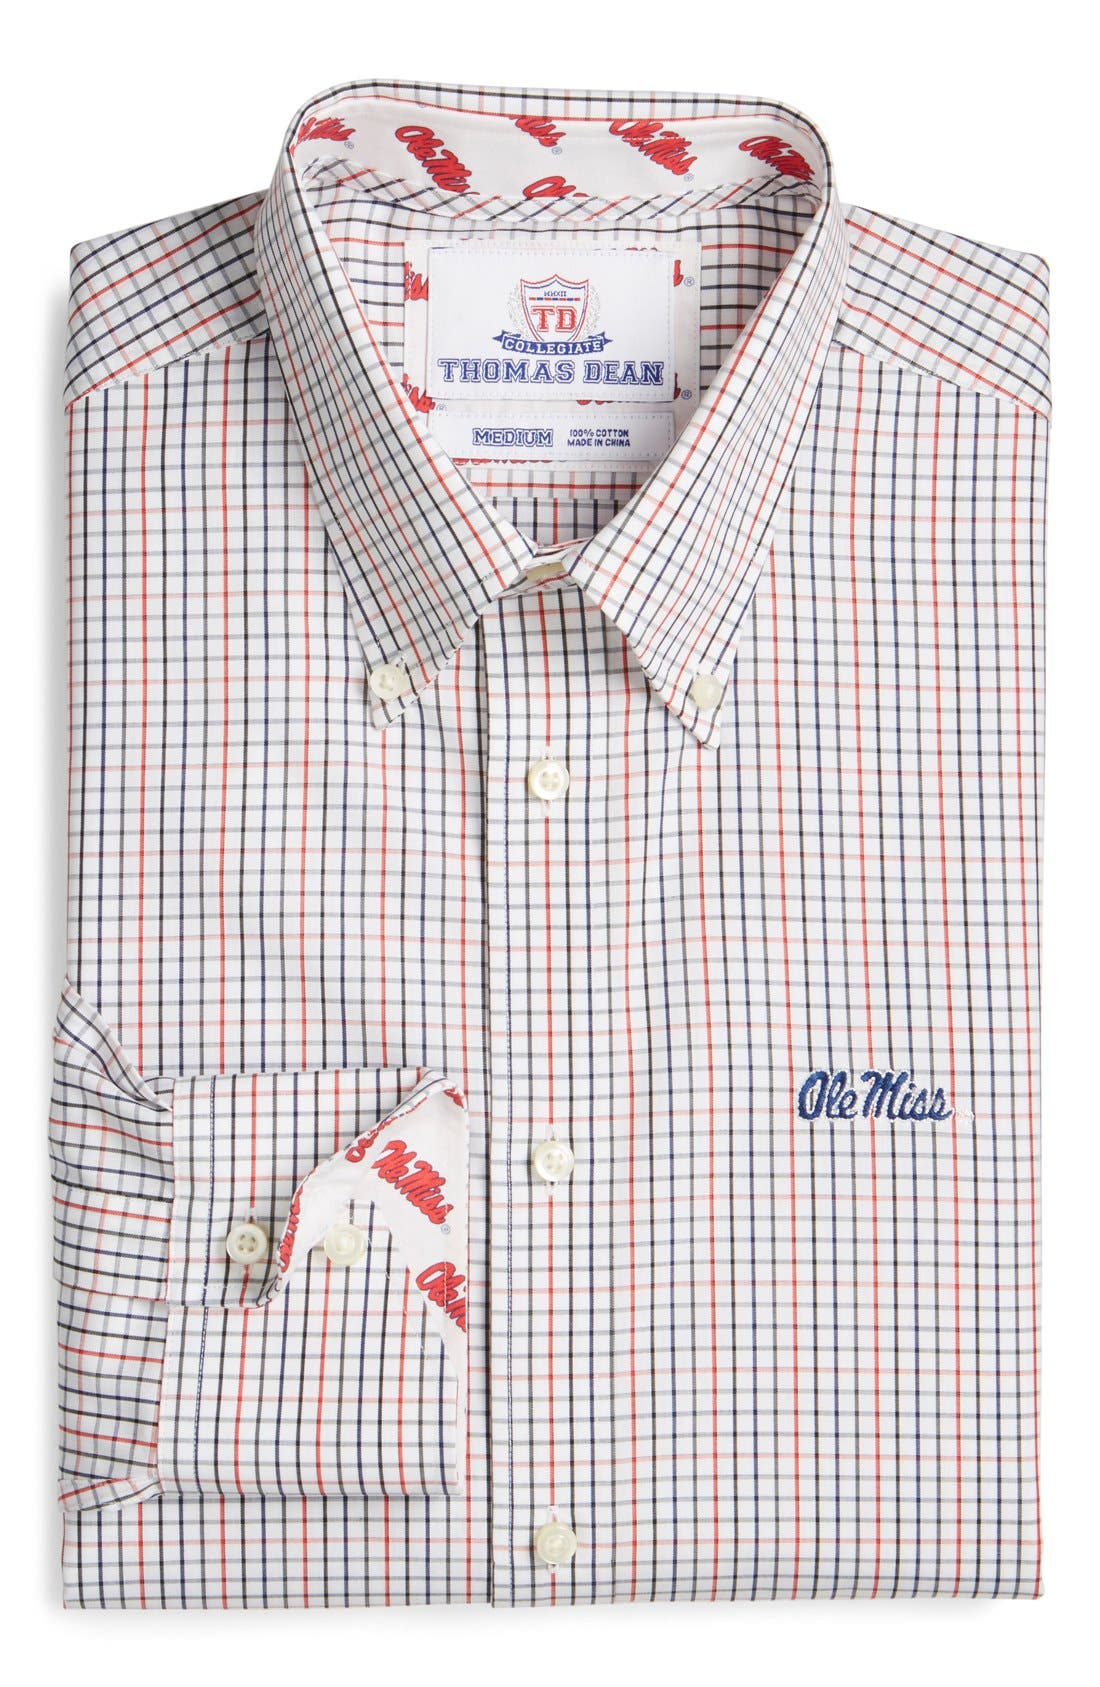 'Ole Miss Rebels' Regular Fit Long Sleeve Tattersall Sport Shirt,                             Alternate thumbnail 6, color,                             600